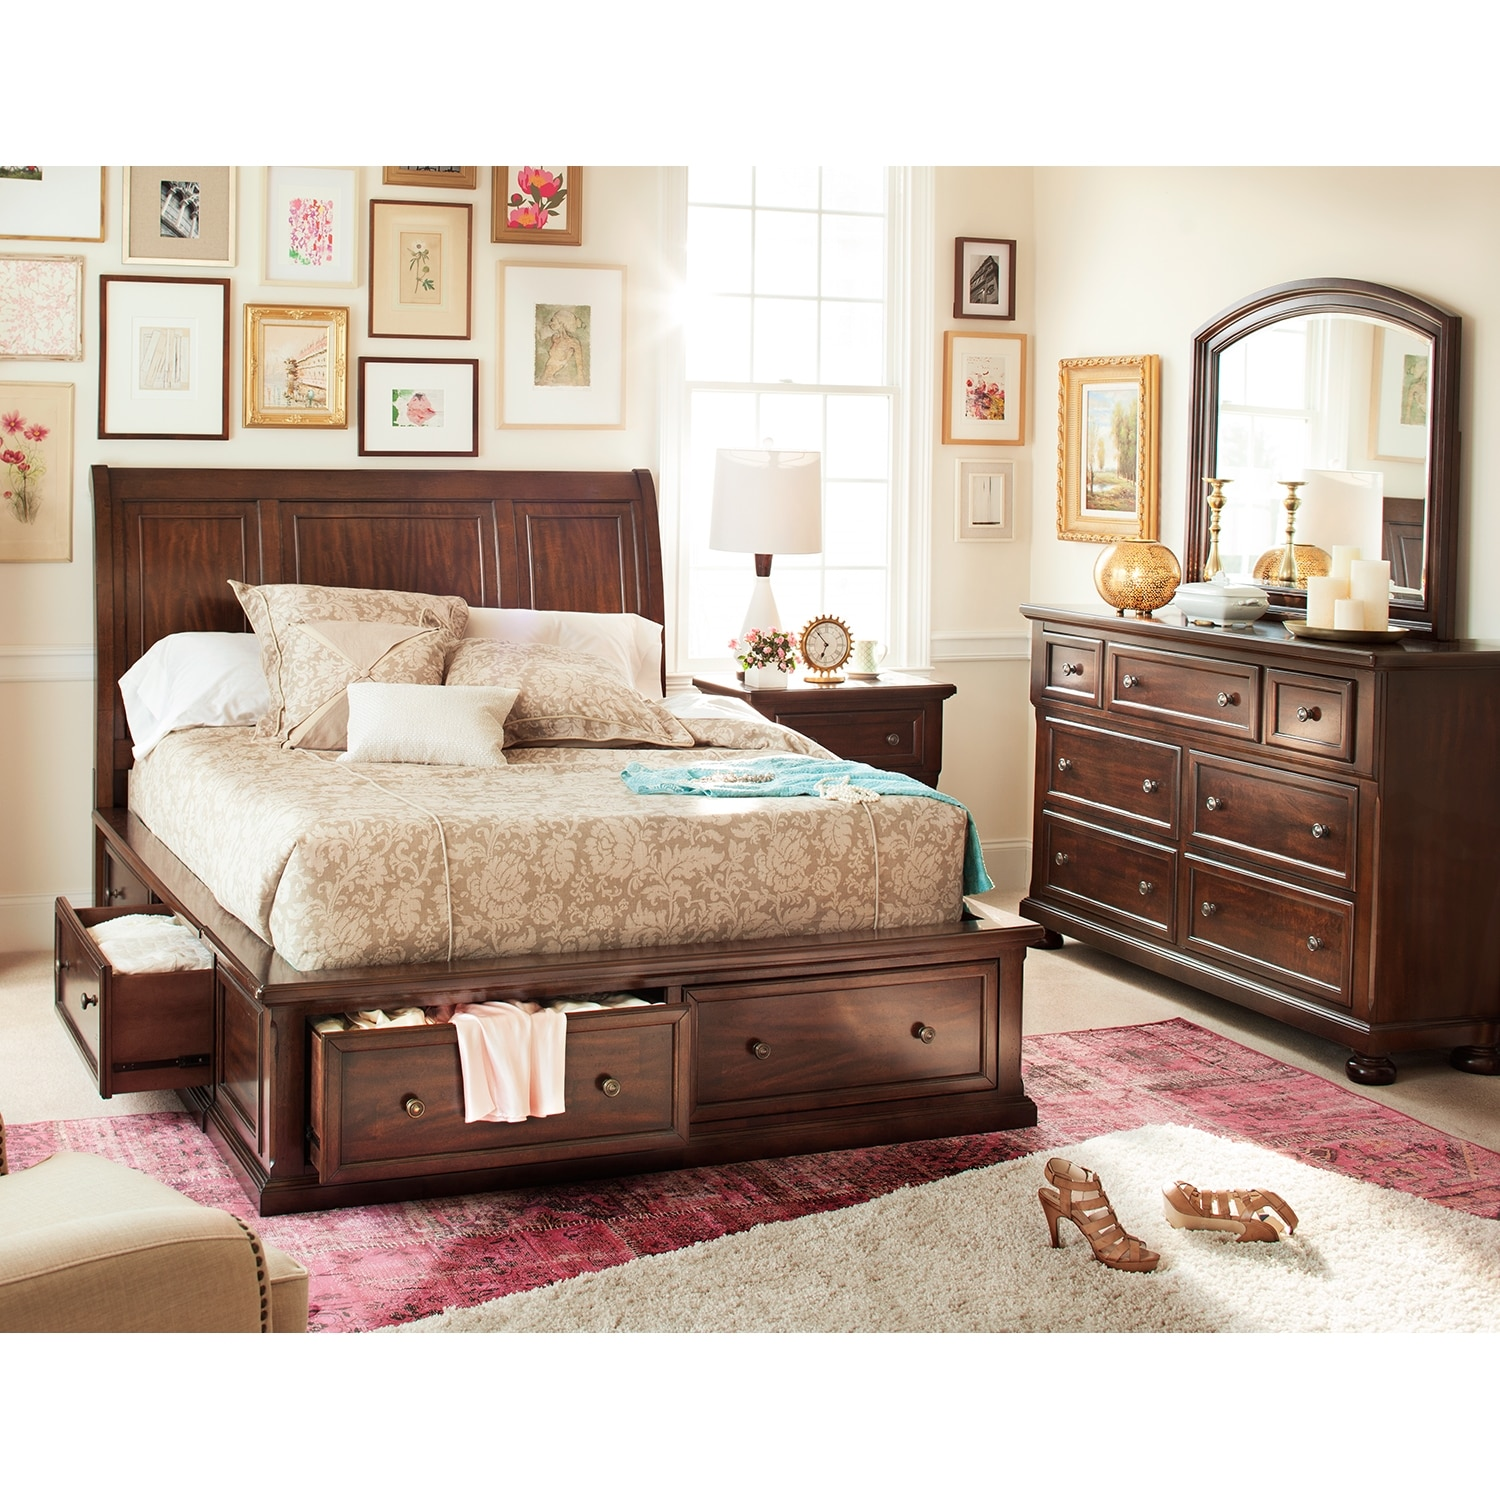 Image of: California King Storage Bed Ideas